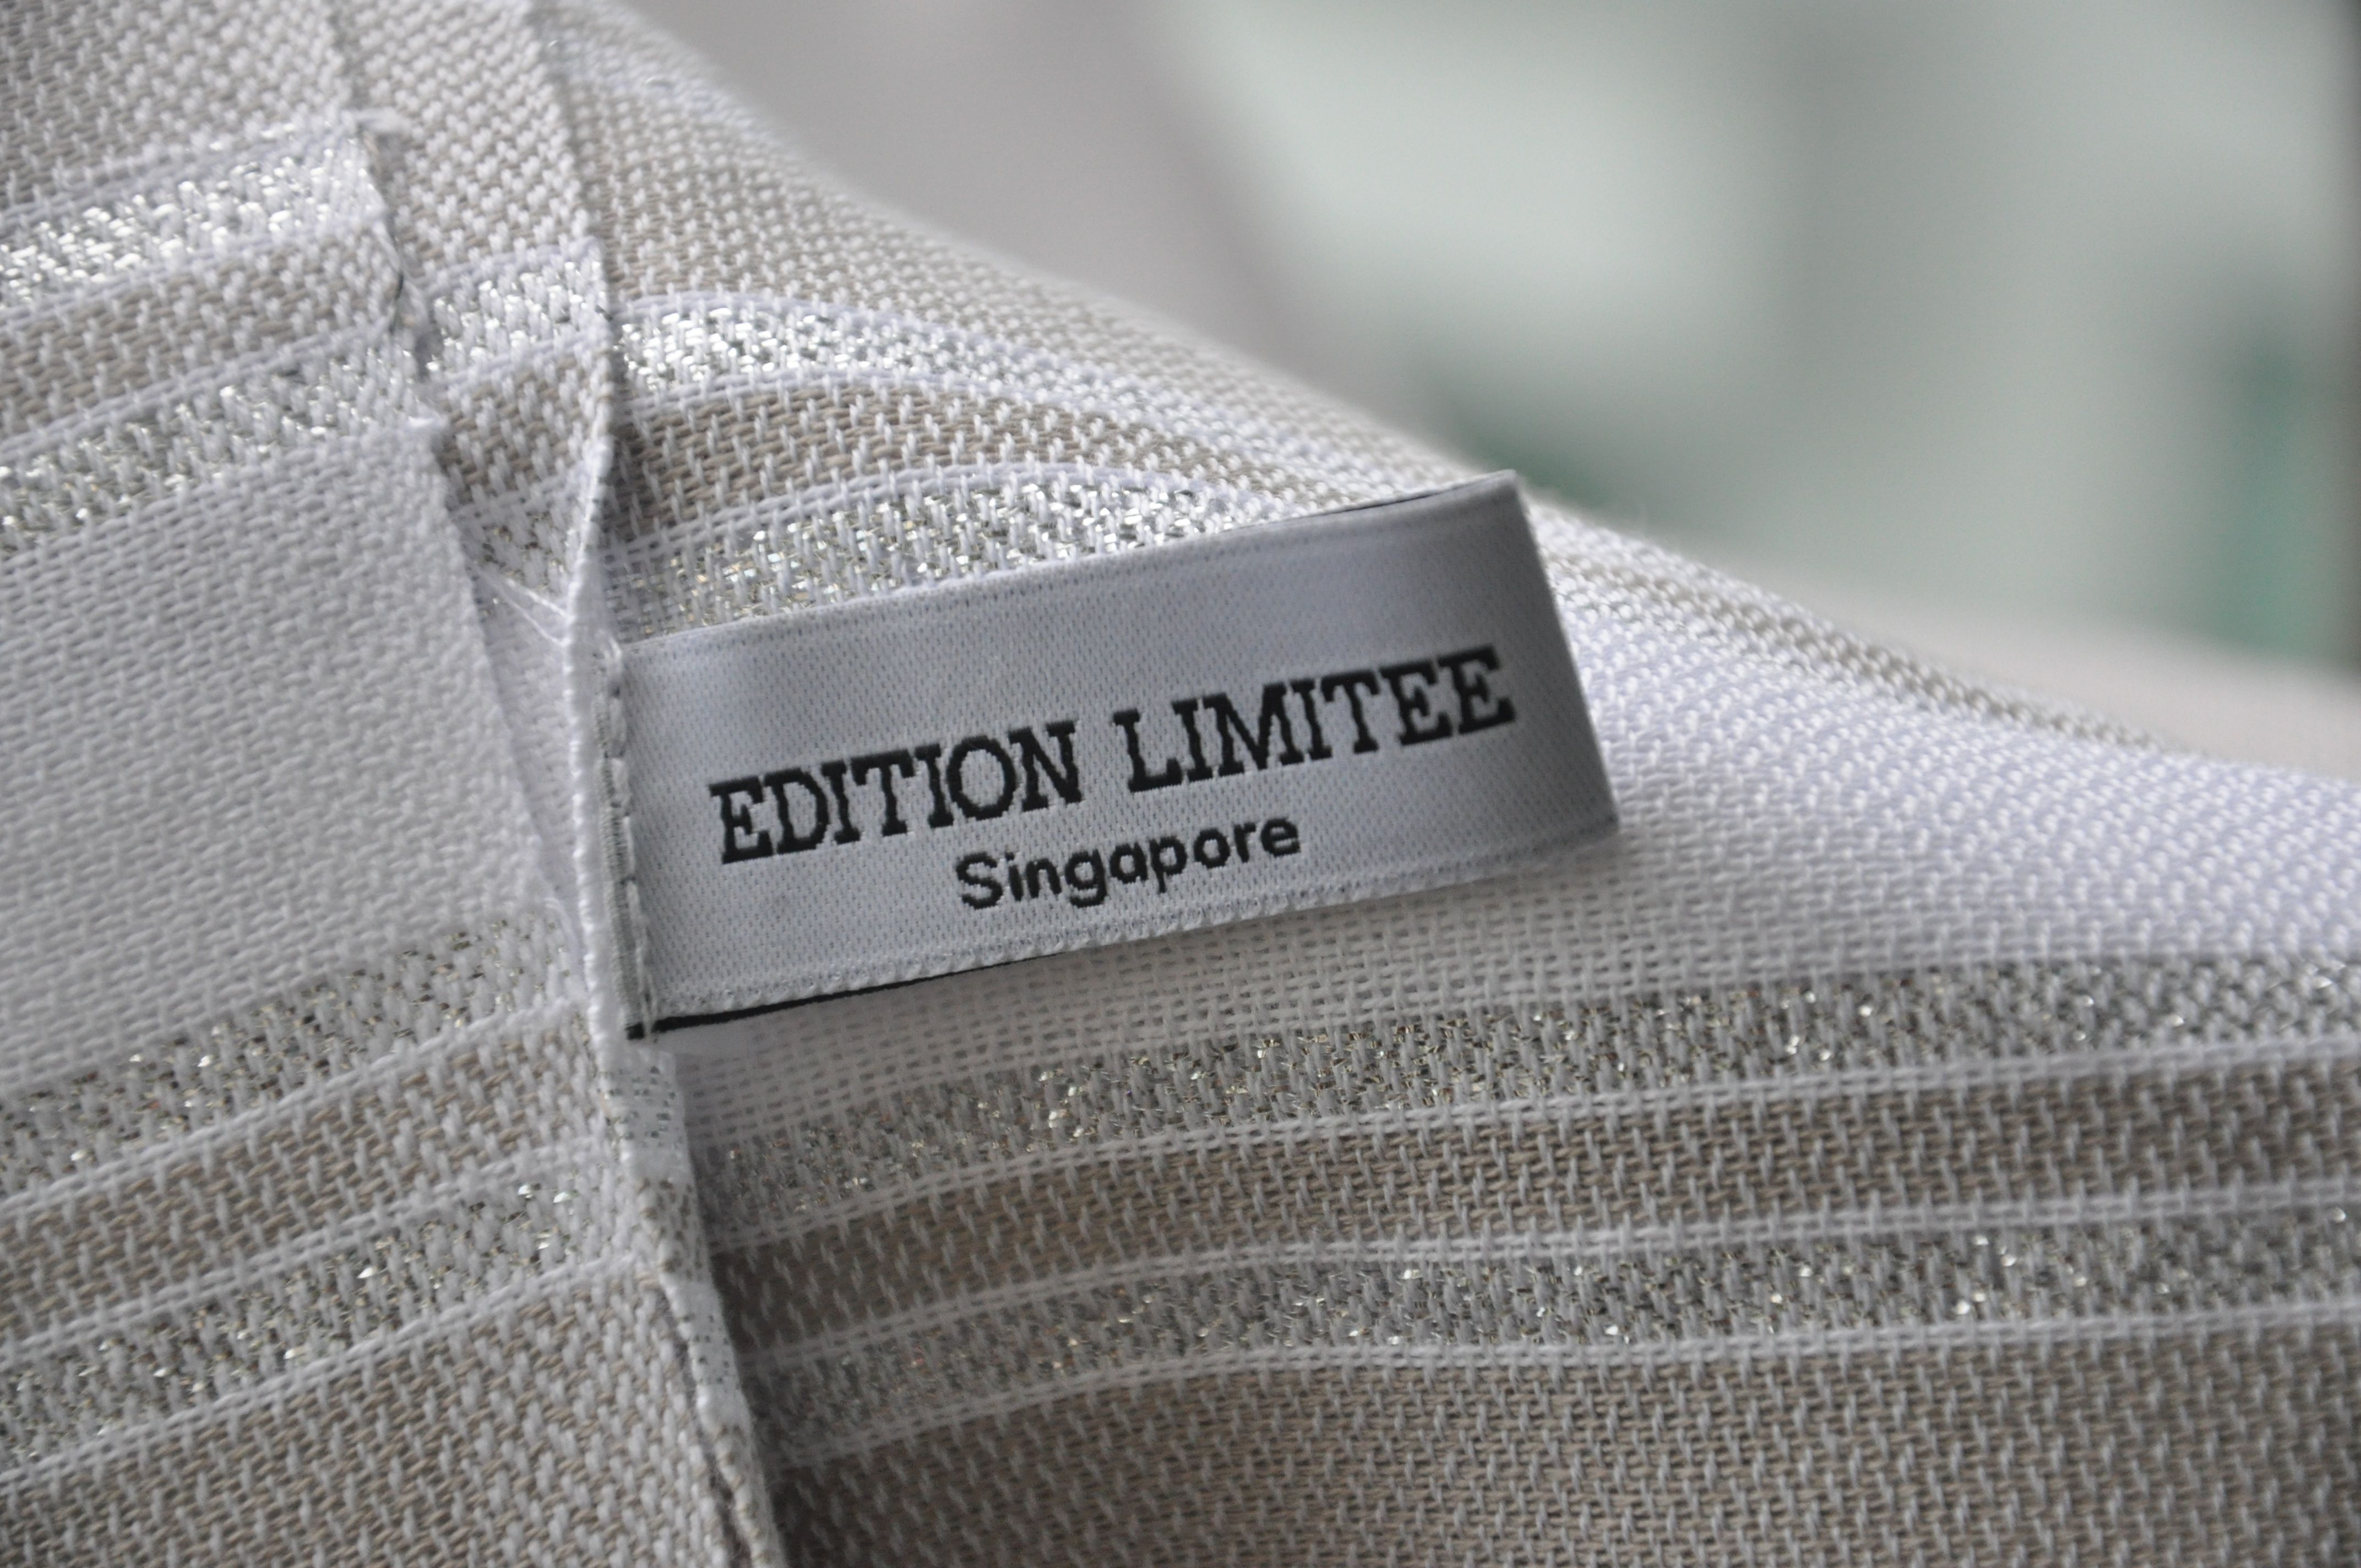 100% cotton with Lurex - white and silver - editionlimitee.com.sg